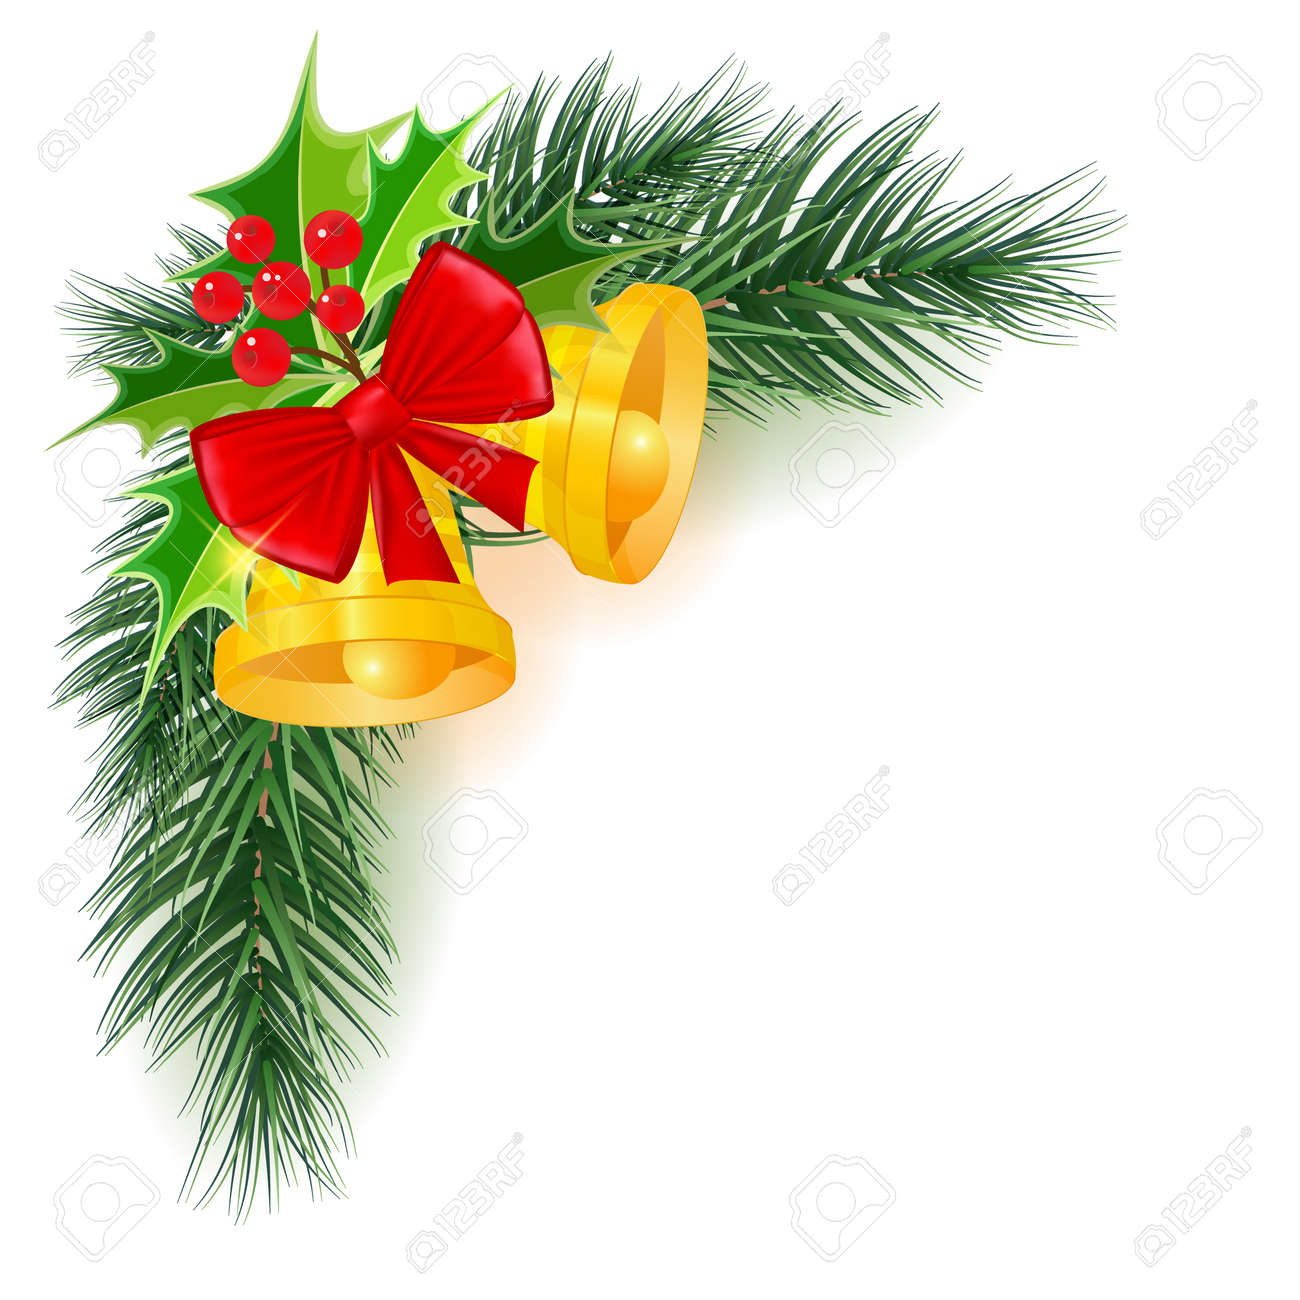 Christmas banner with branches, vector illustration. Beautiful new year background - 159690345